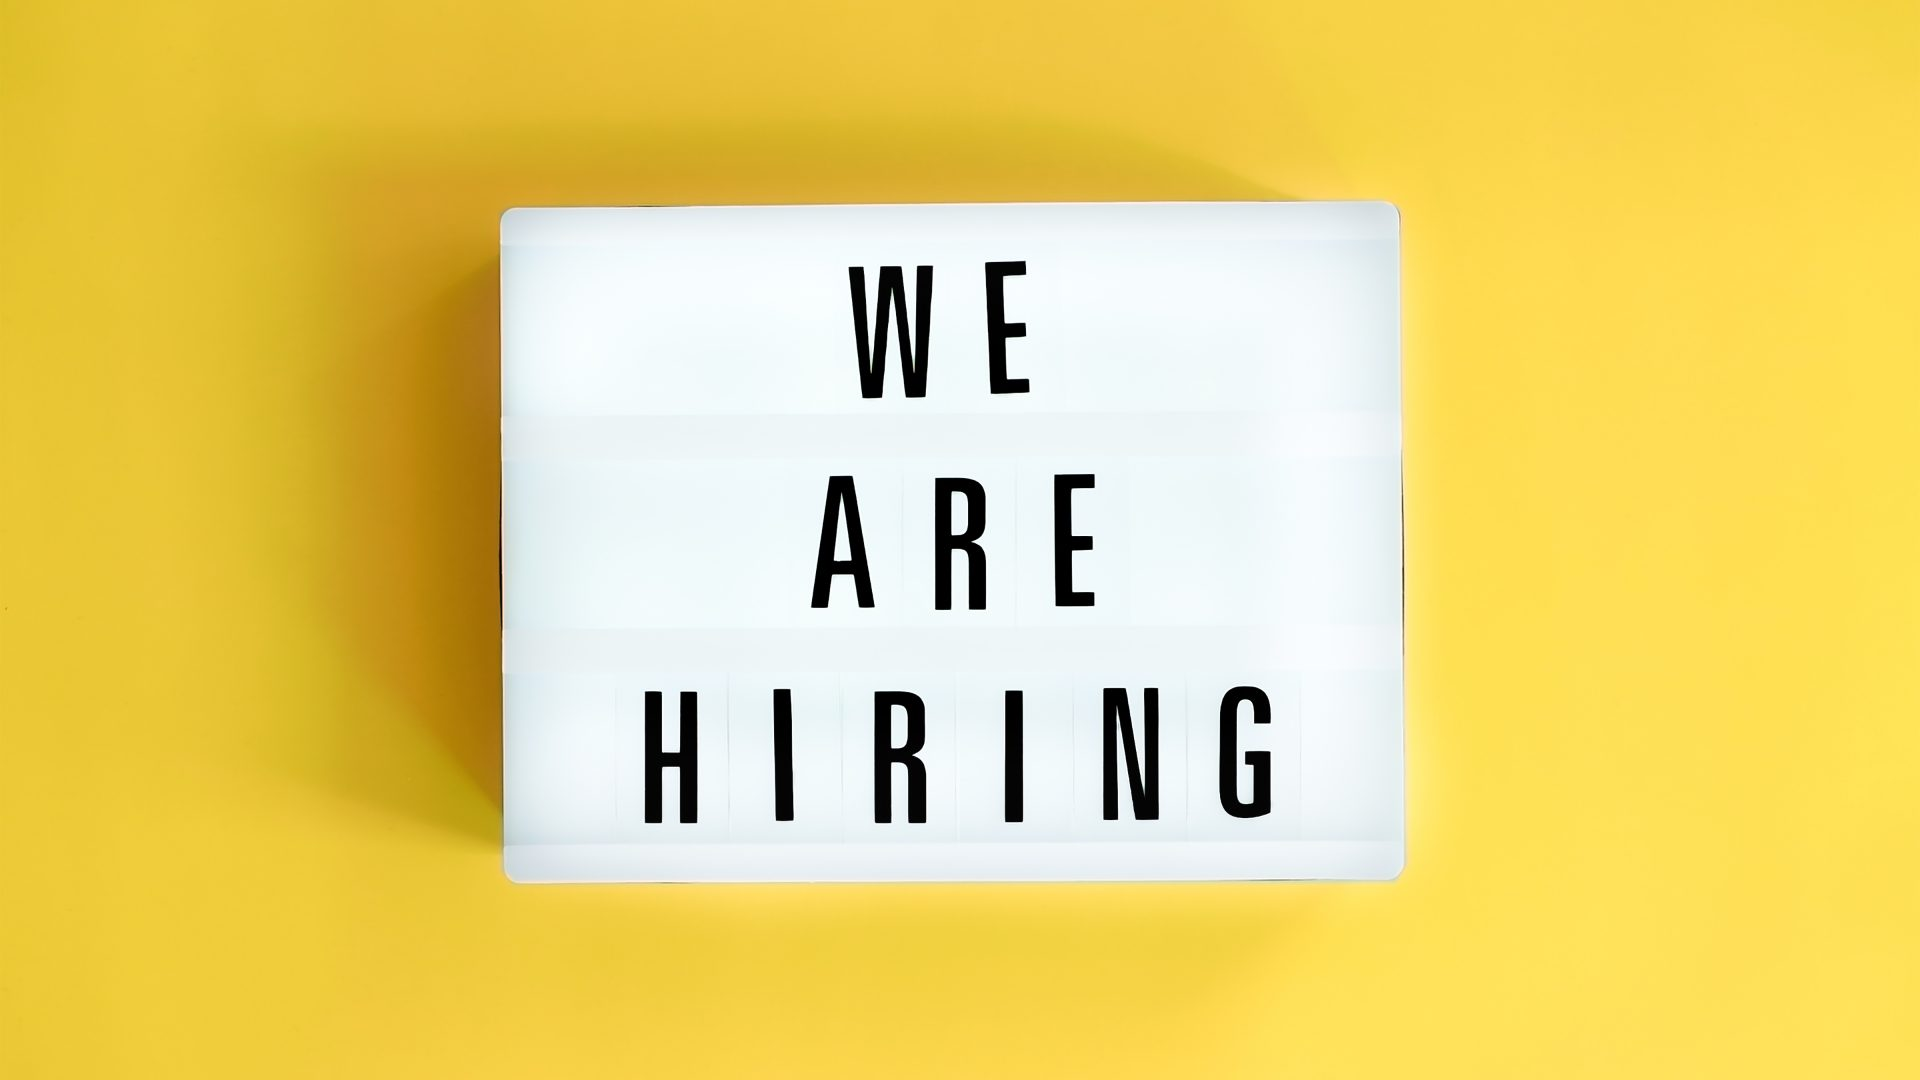 logos is looking for a Public Affairs intern for the Digital, SPace & Aviation team